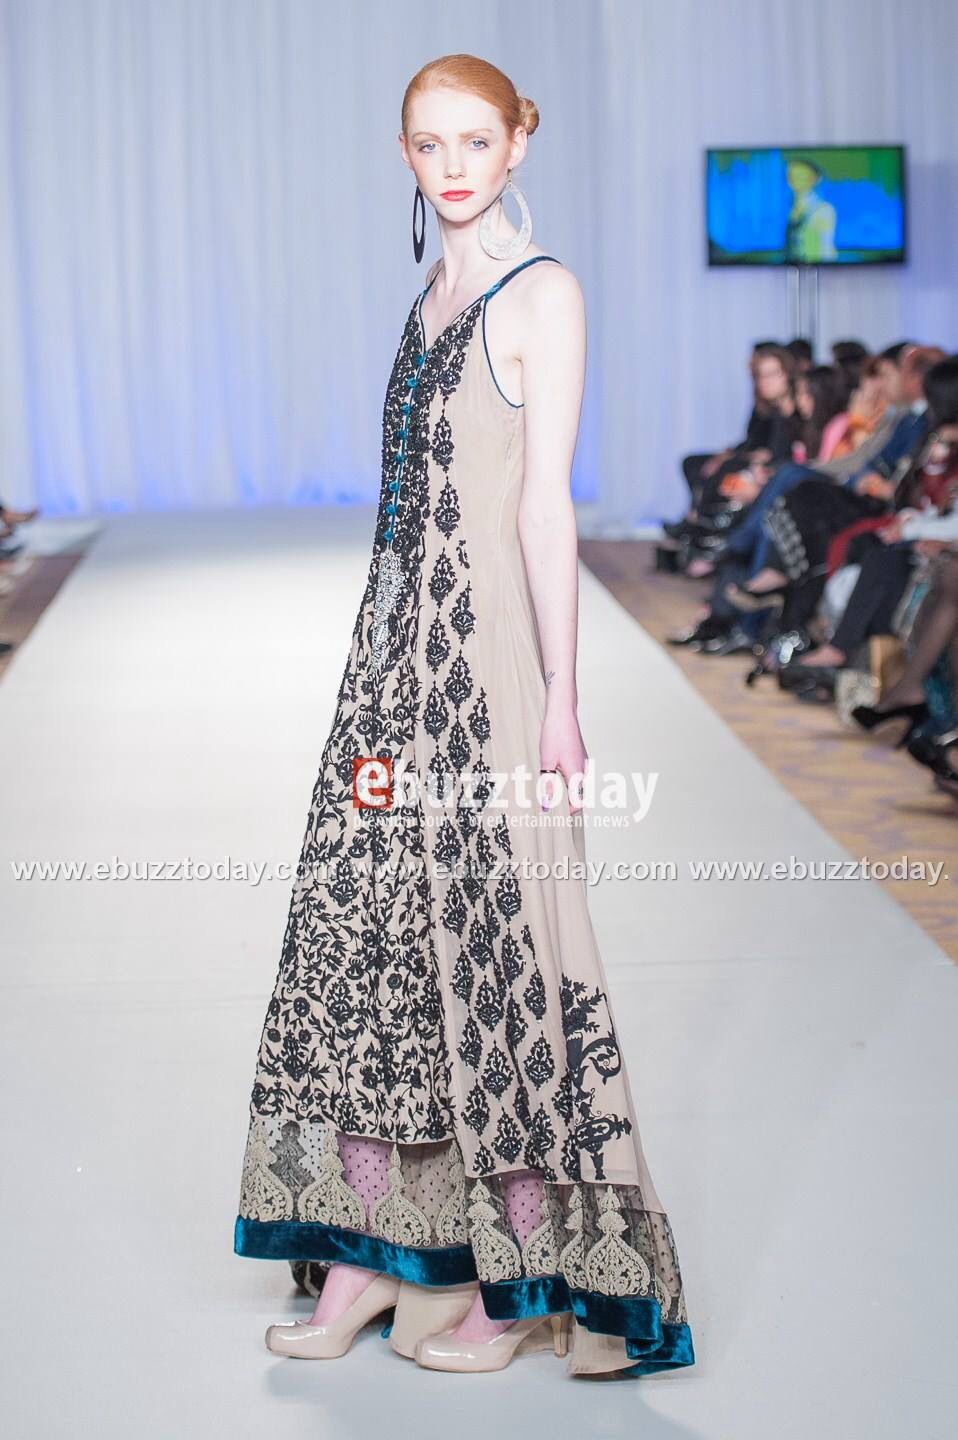 Pakistan Fashion Week, Instagram: CharBrookeModel